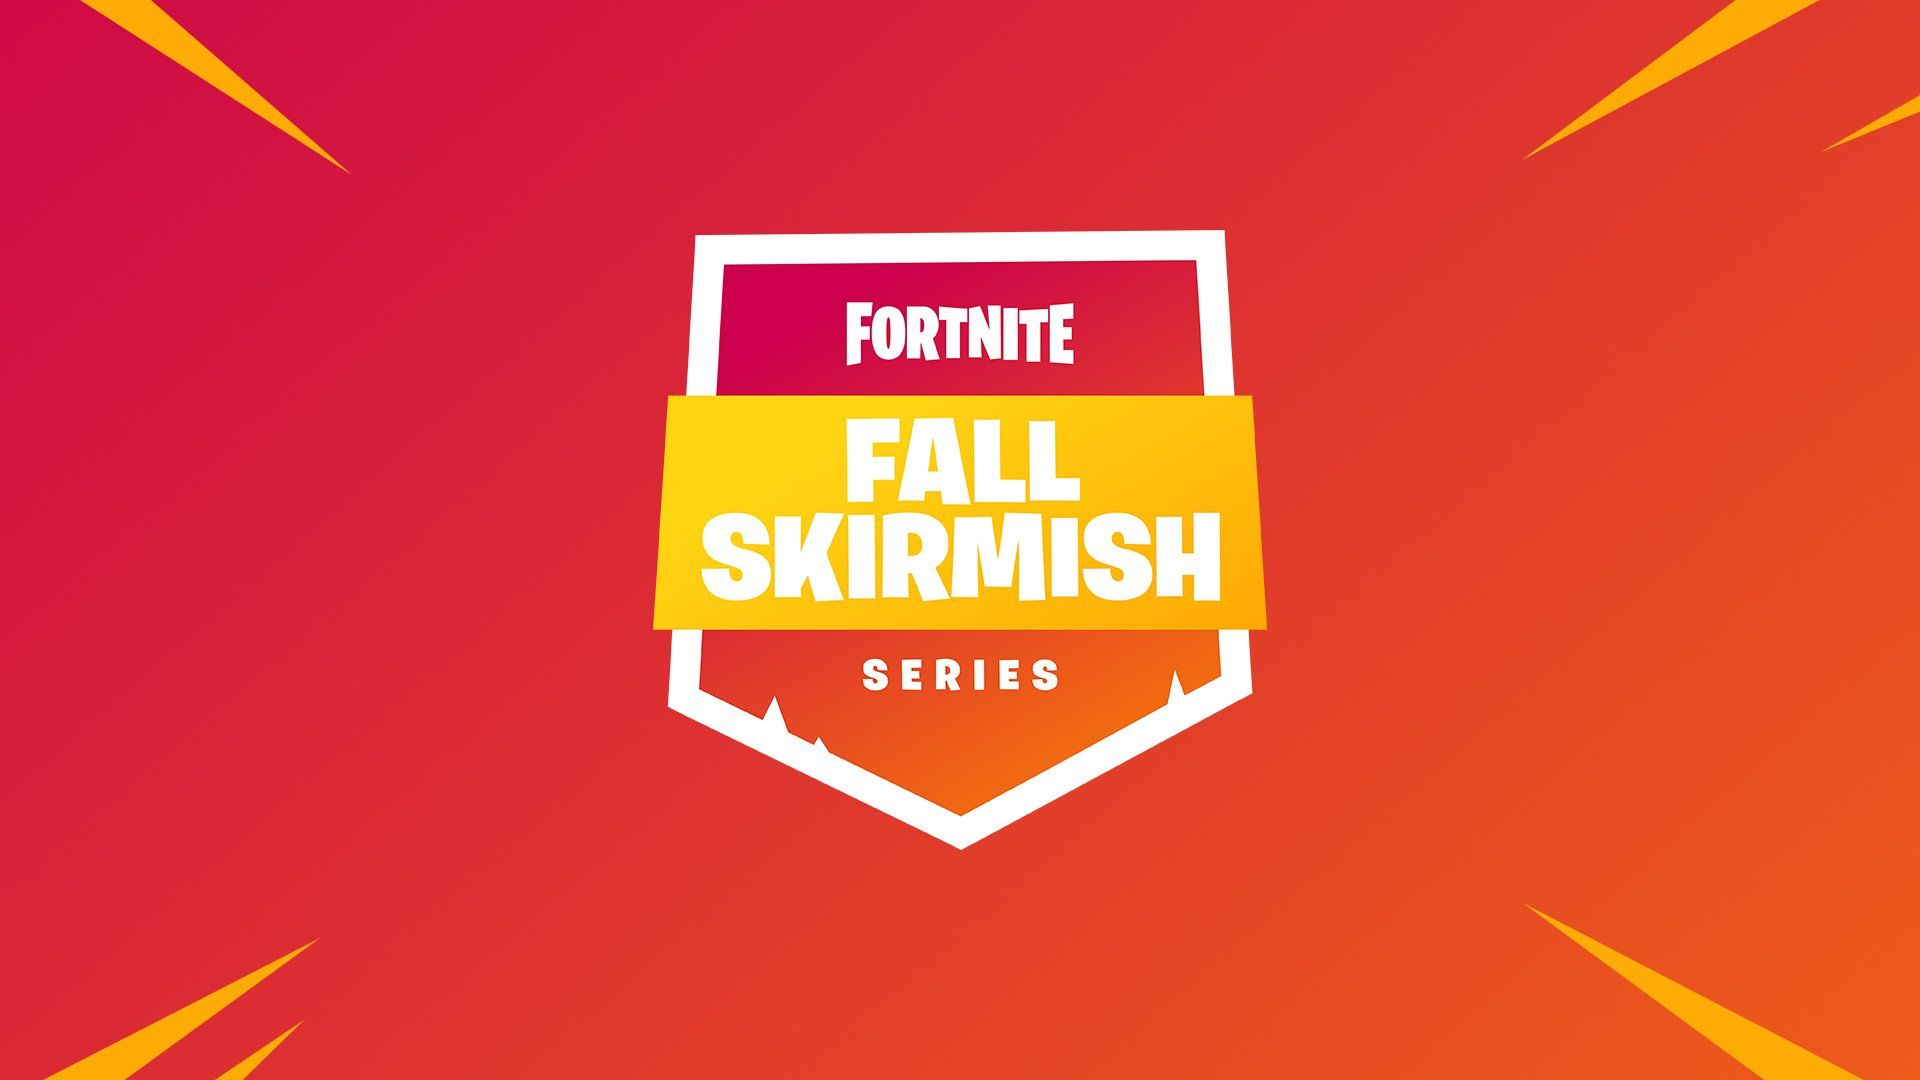 Fortnite Fall Skirmish logo